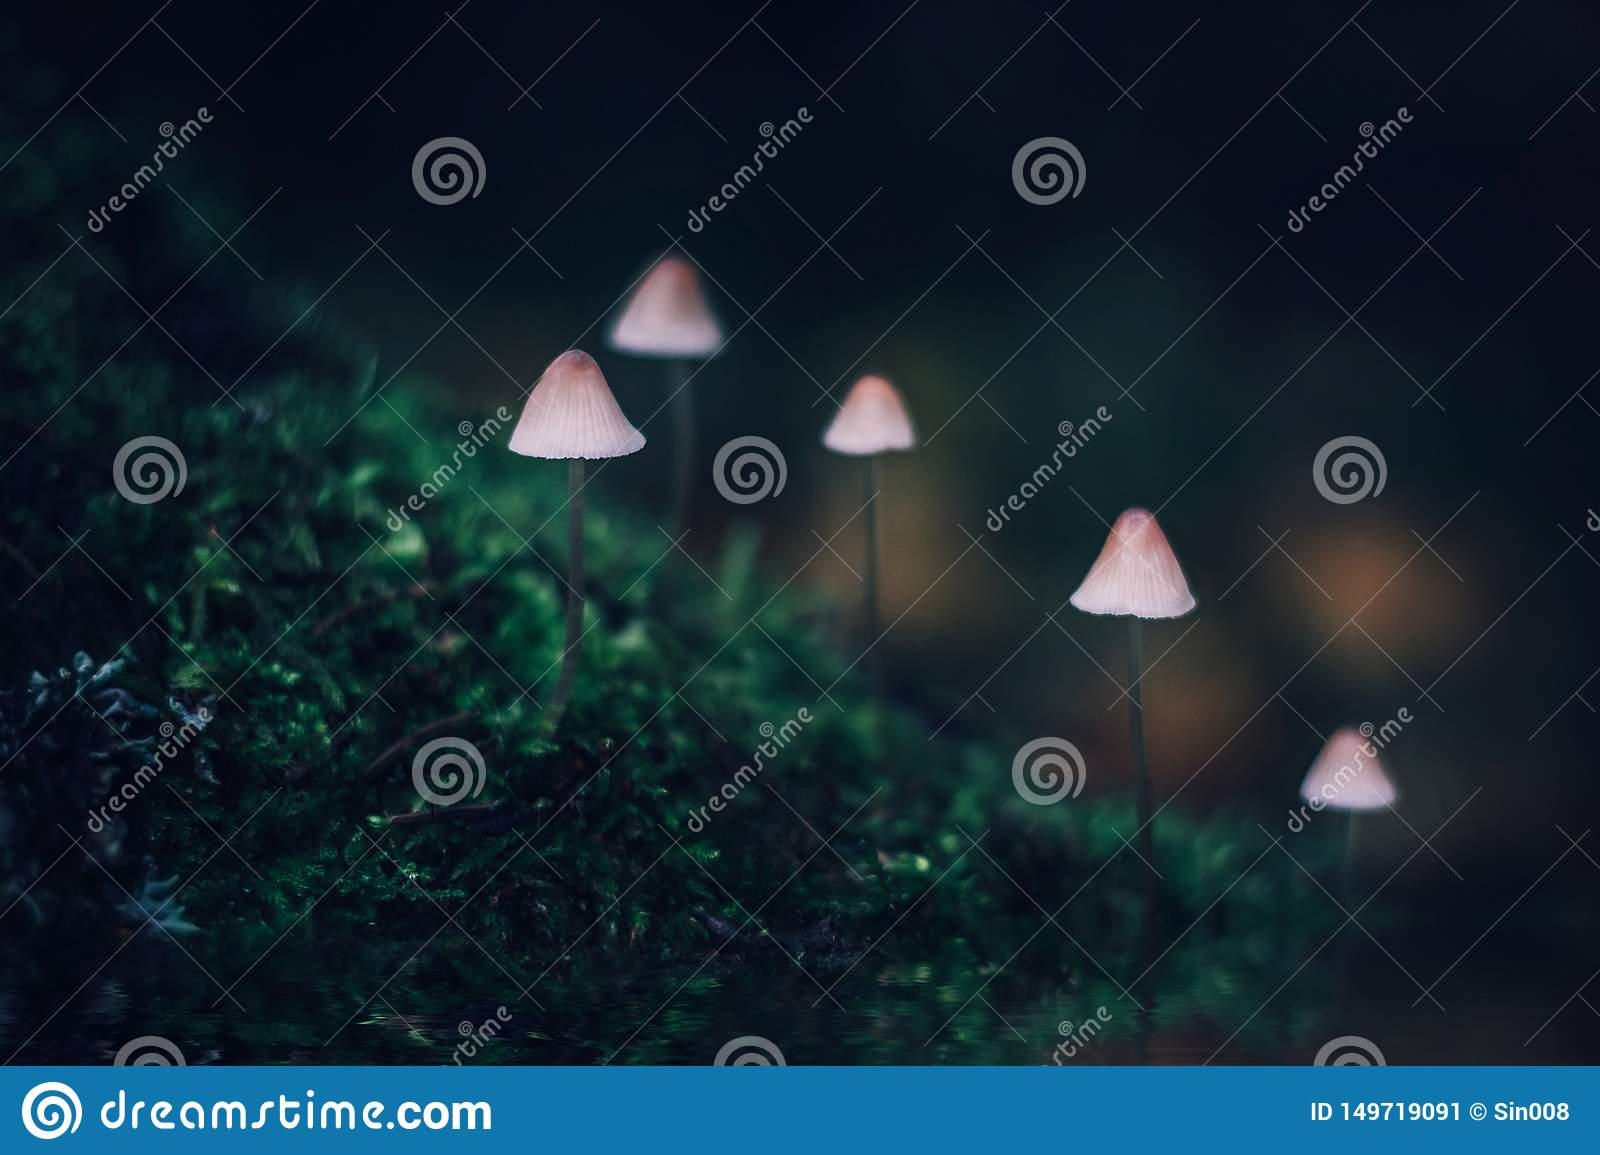 White poisonous little mushroom mycena on dark green background. A group of mushrooms on a hill covered with moss. Mycena filopes